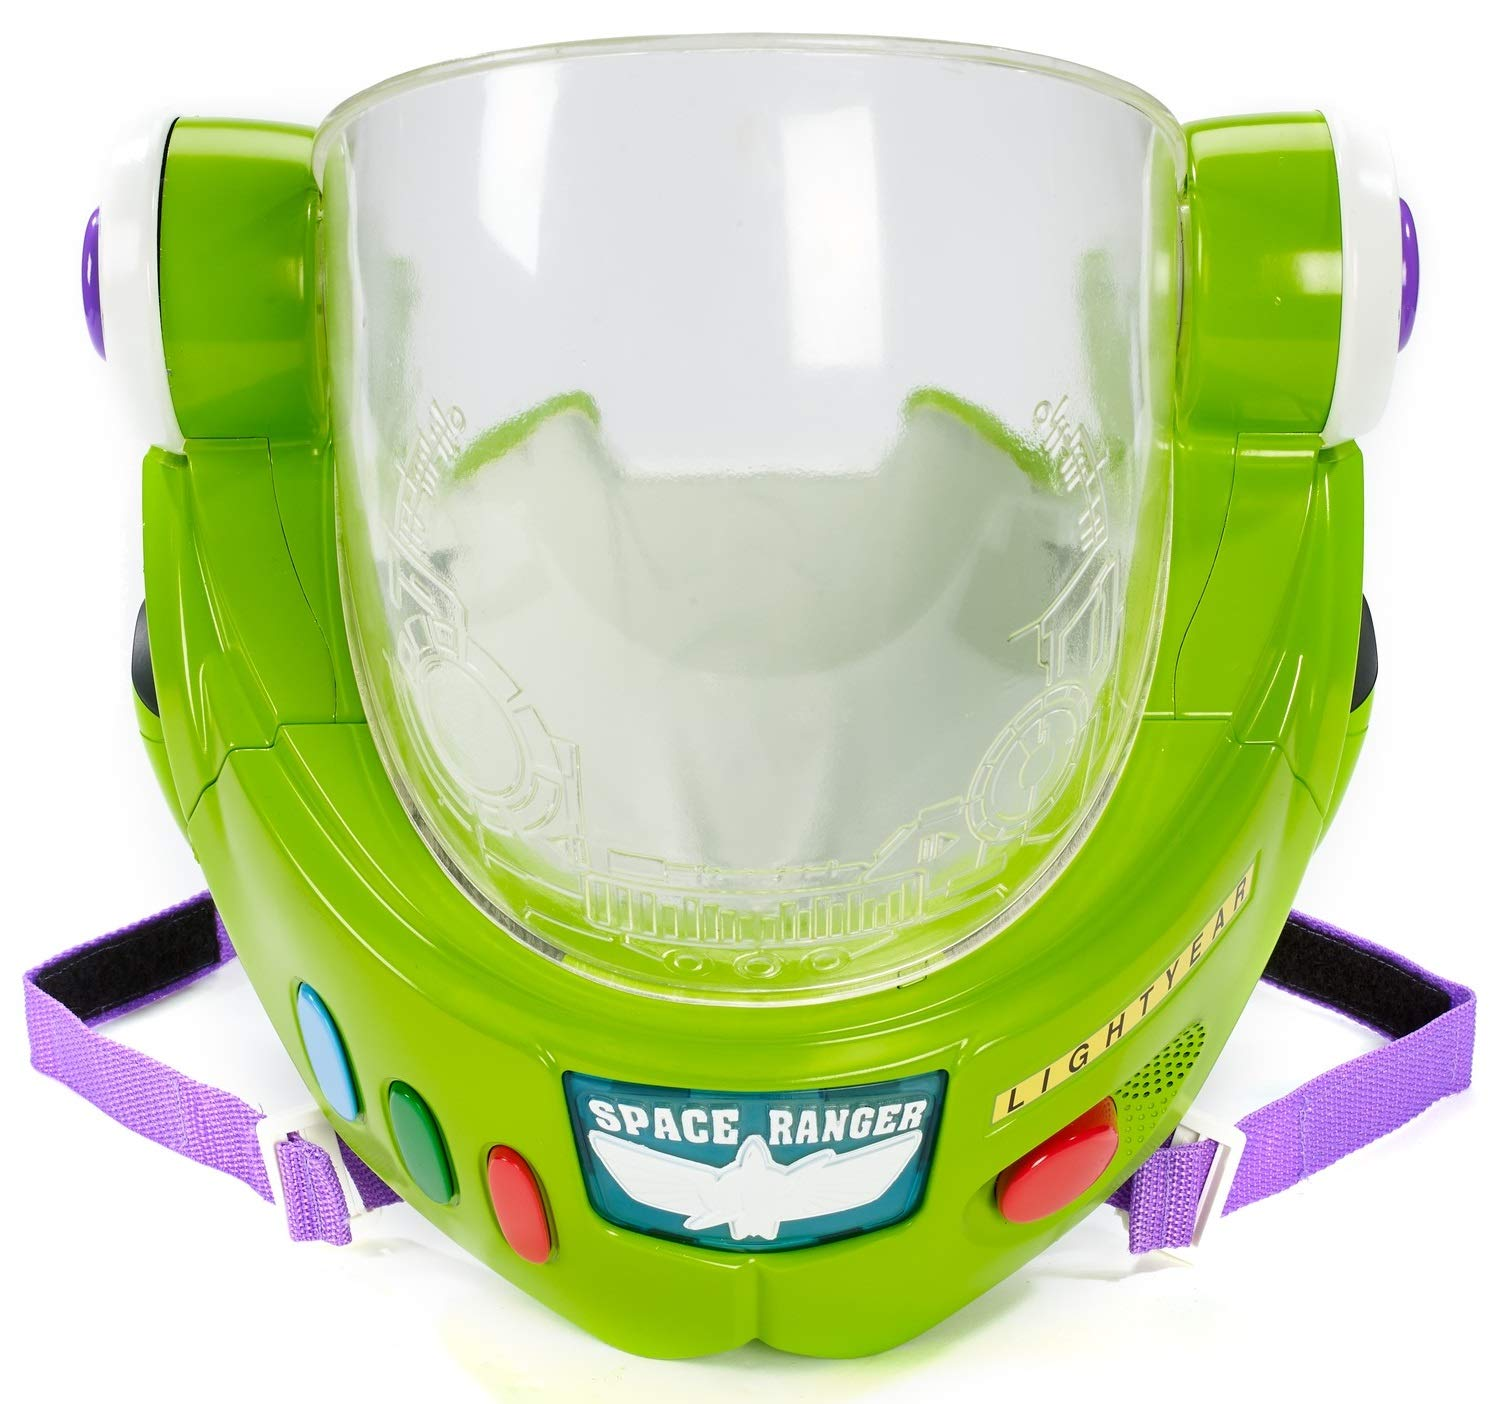 Toy Story Disney Pixar 4 Buzz Lightyear Space Ranger Armor with Jet Pack by Toy Story (Image #15)